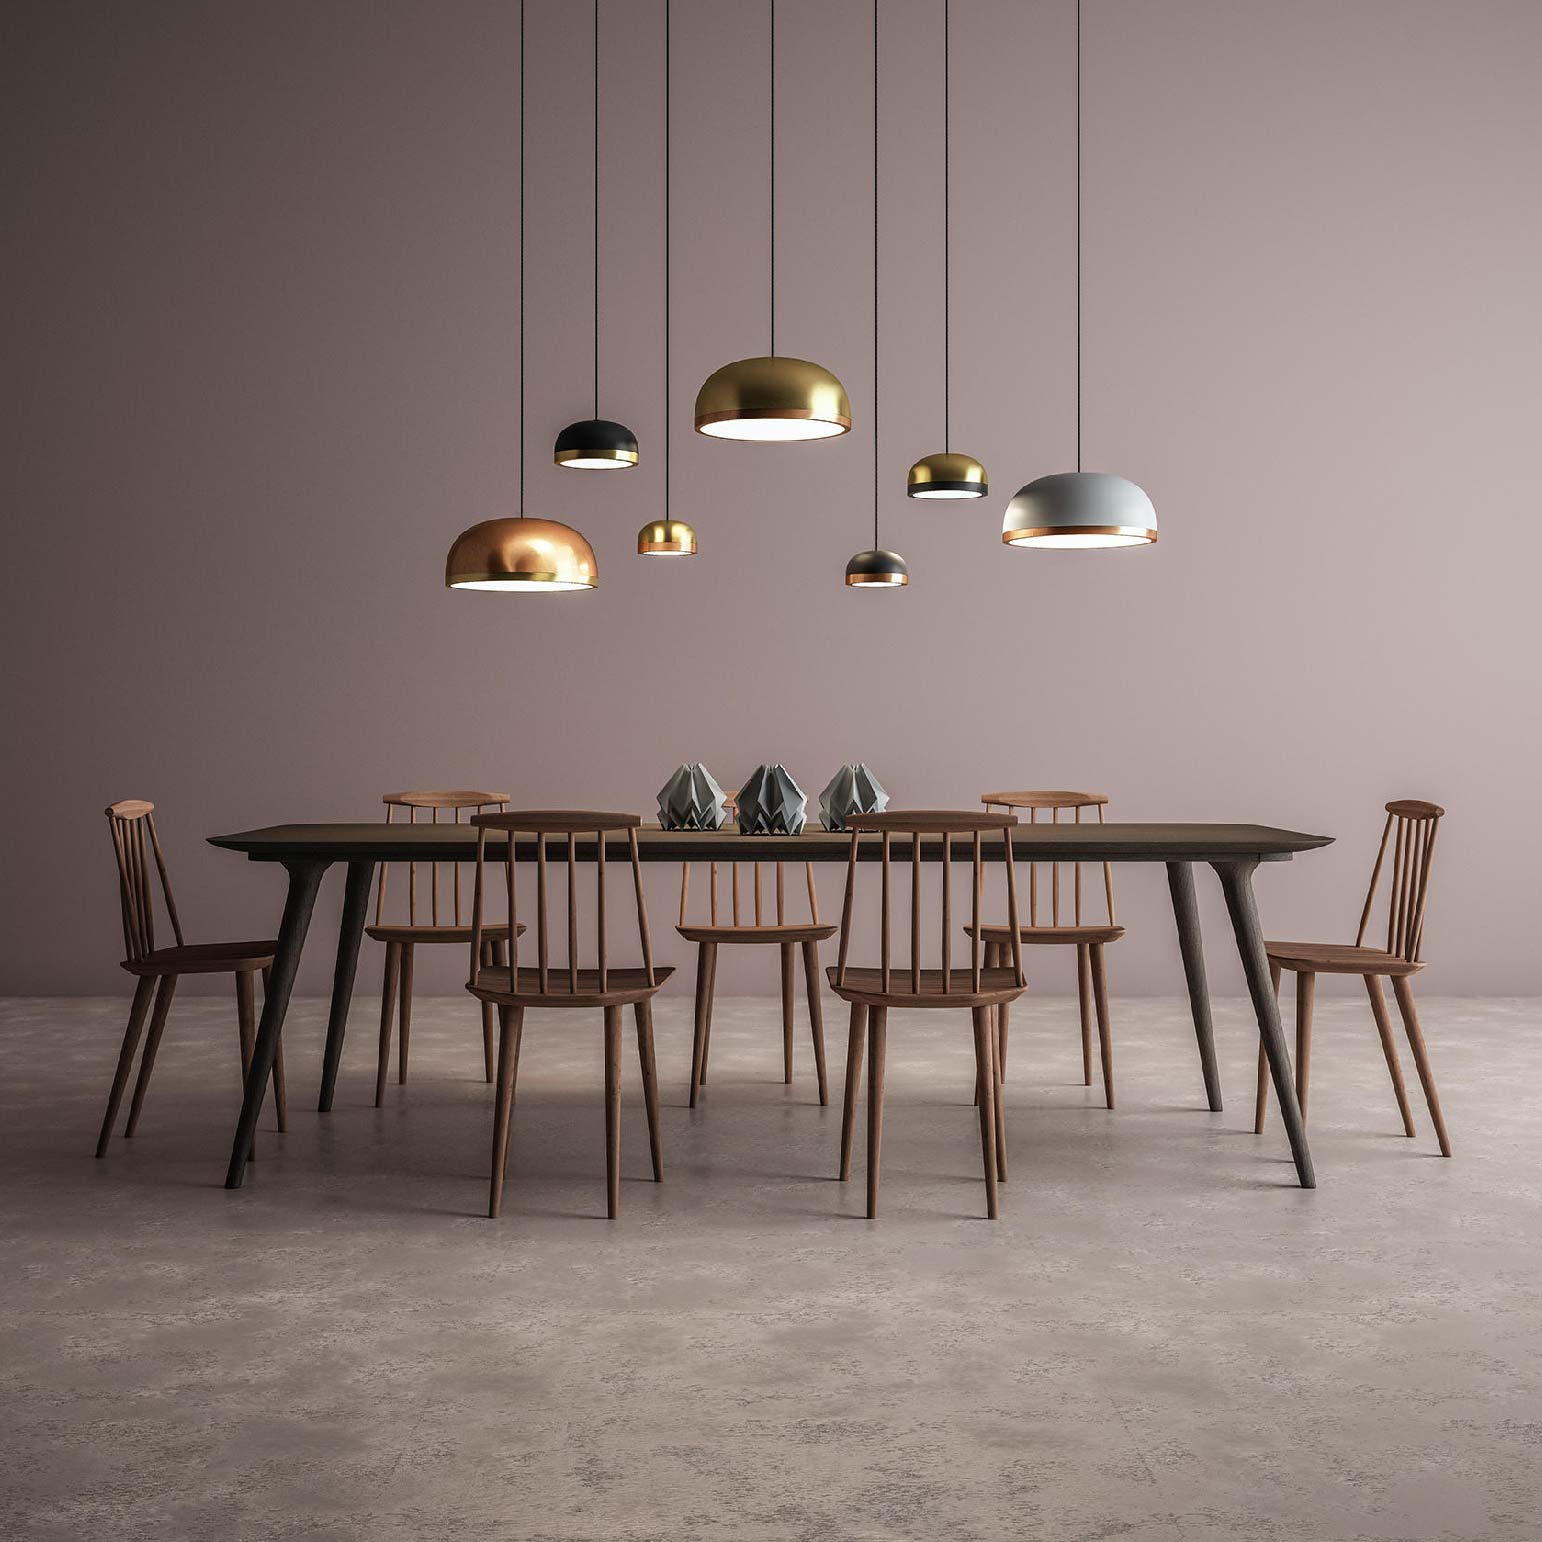 Suspension Lighting